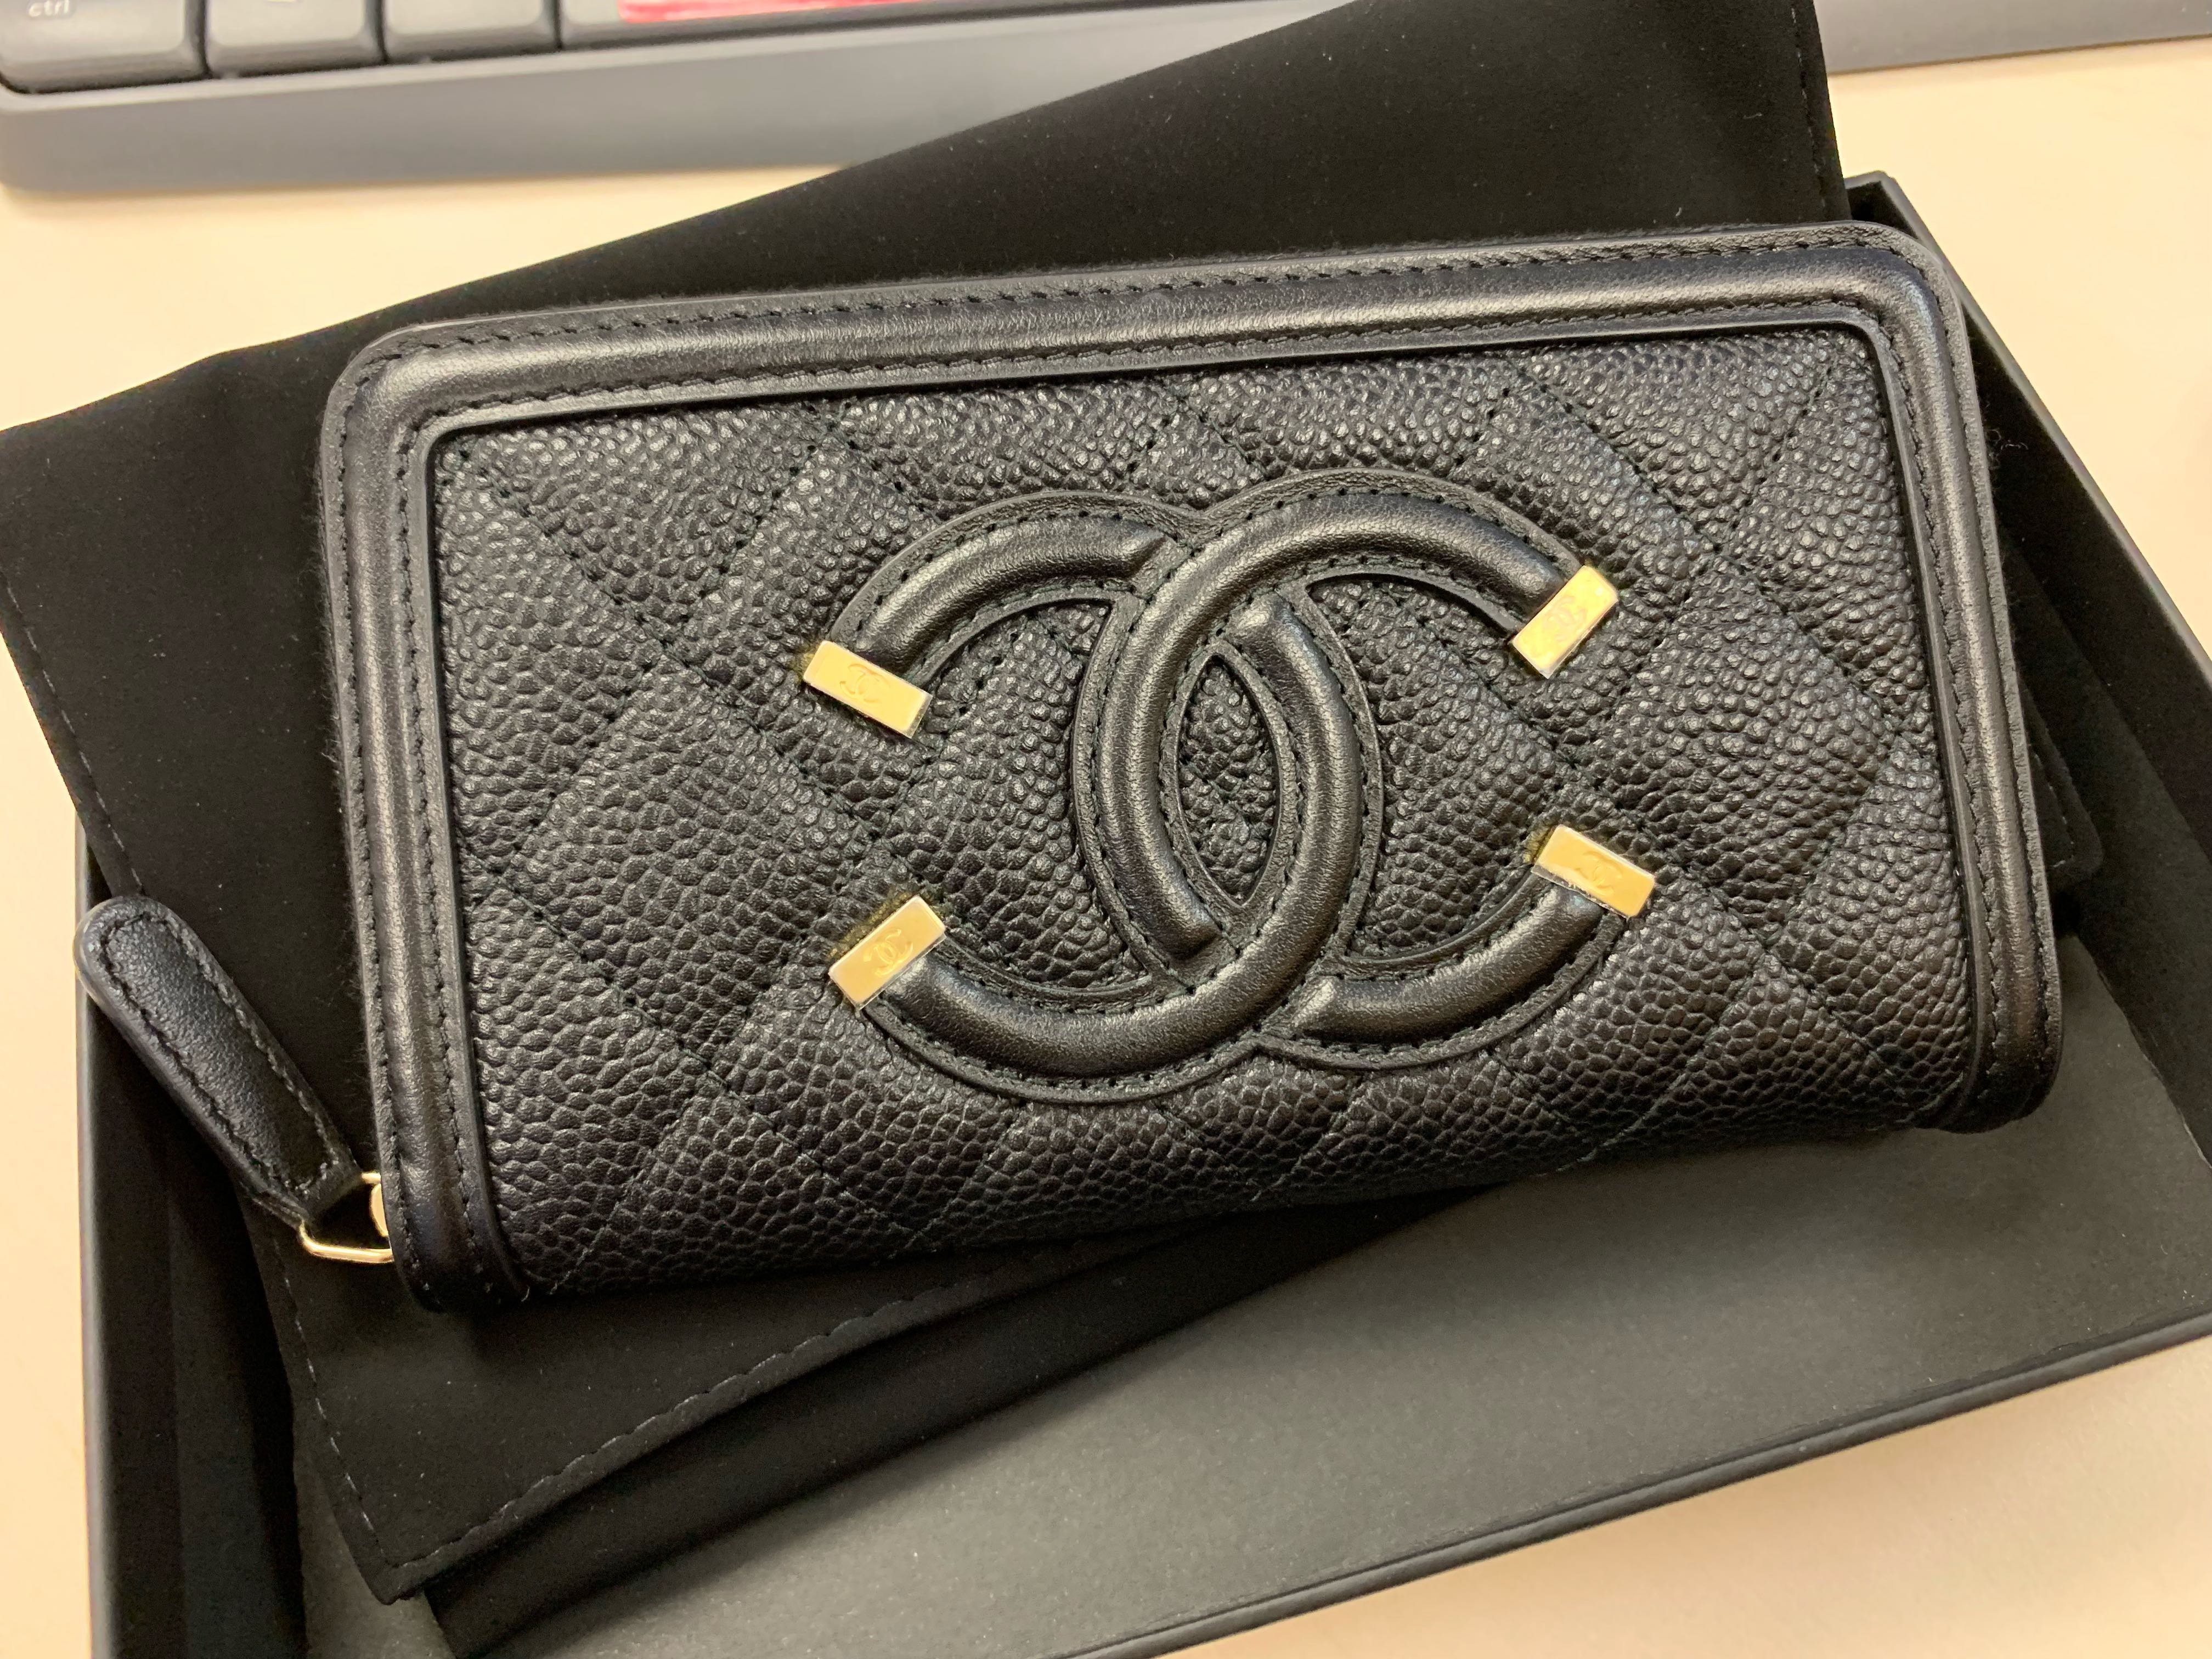 6fa5d609f9a2 [全新] Chanel vanity wallet 銀包, Luxury, Bags & Wallets on Carousell